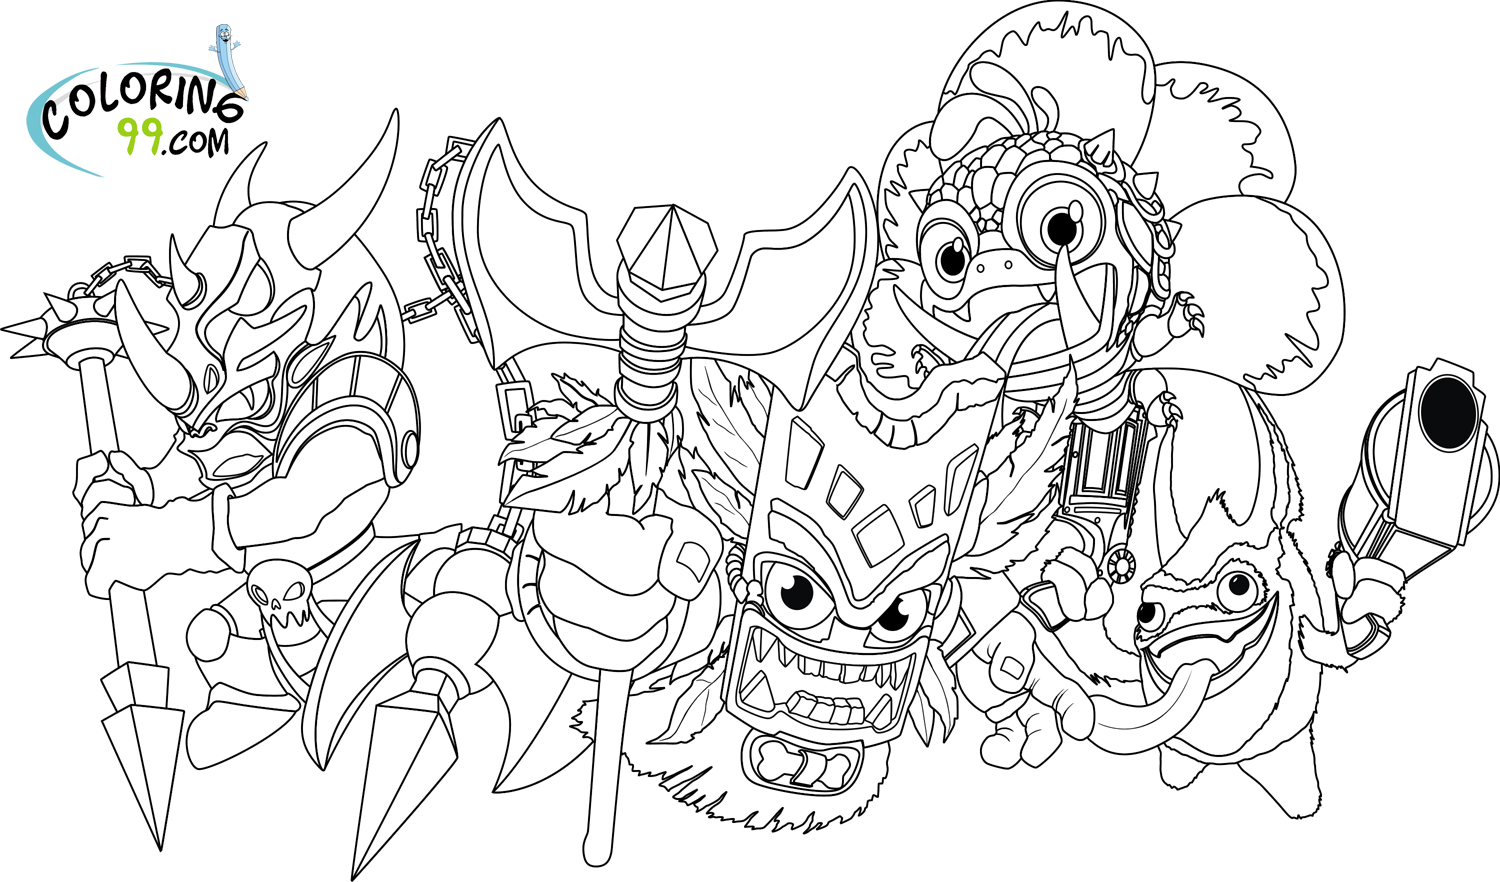 skylander wrecking ball coloring pages | Skylanders Magic Element Coloring Pages | Minister Coloring